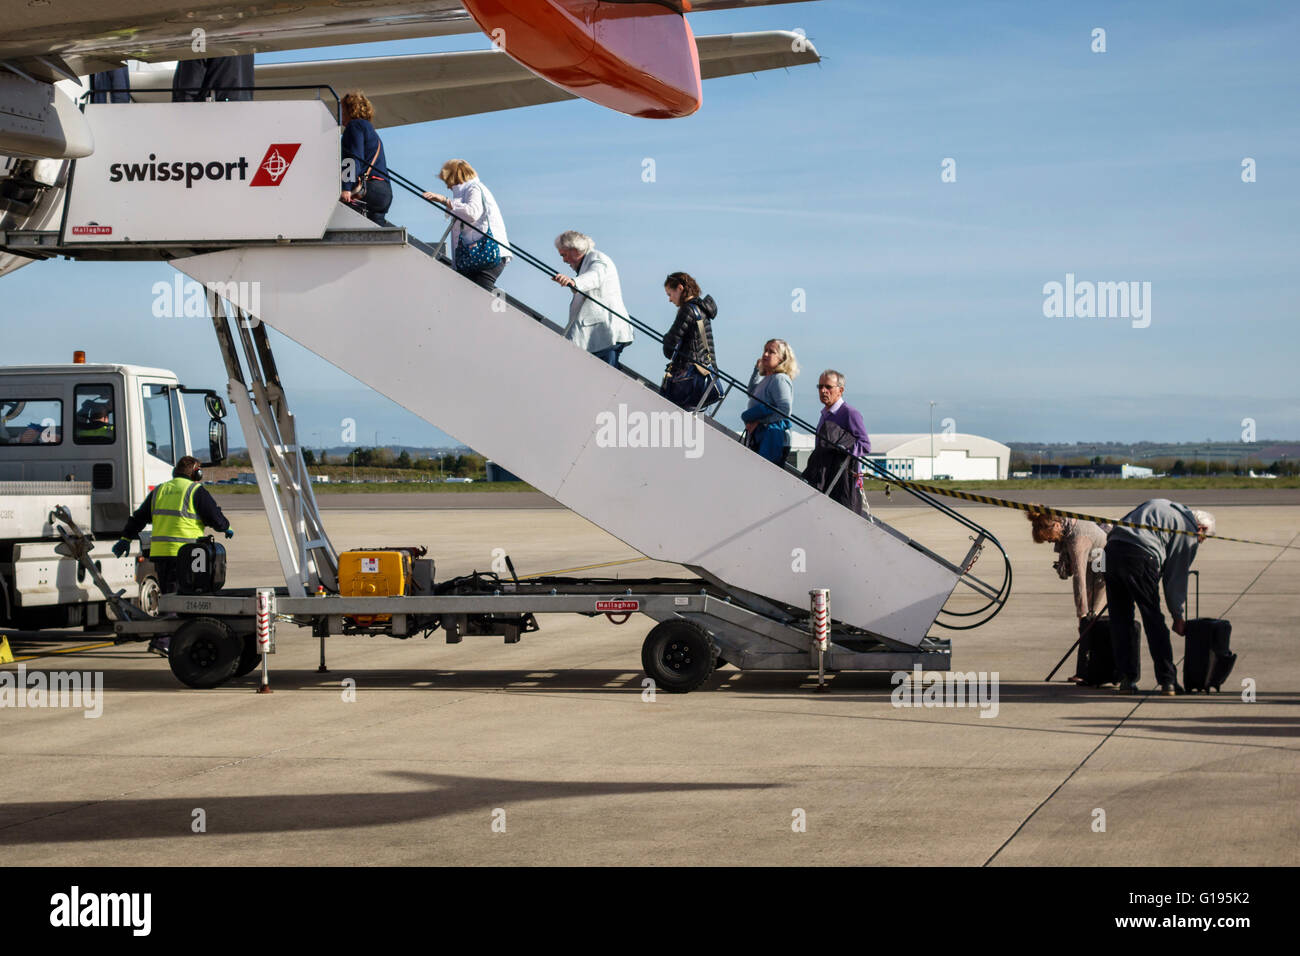 Bristol Airport, Somerset, UK. Passengers boarding an Easyjet aircraft - Stock Image